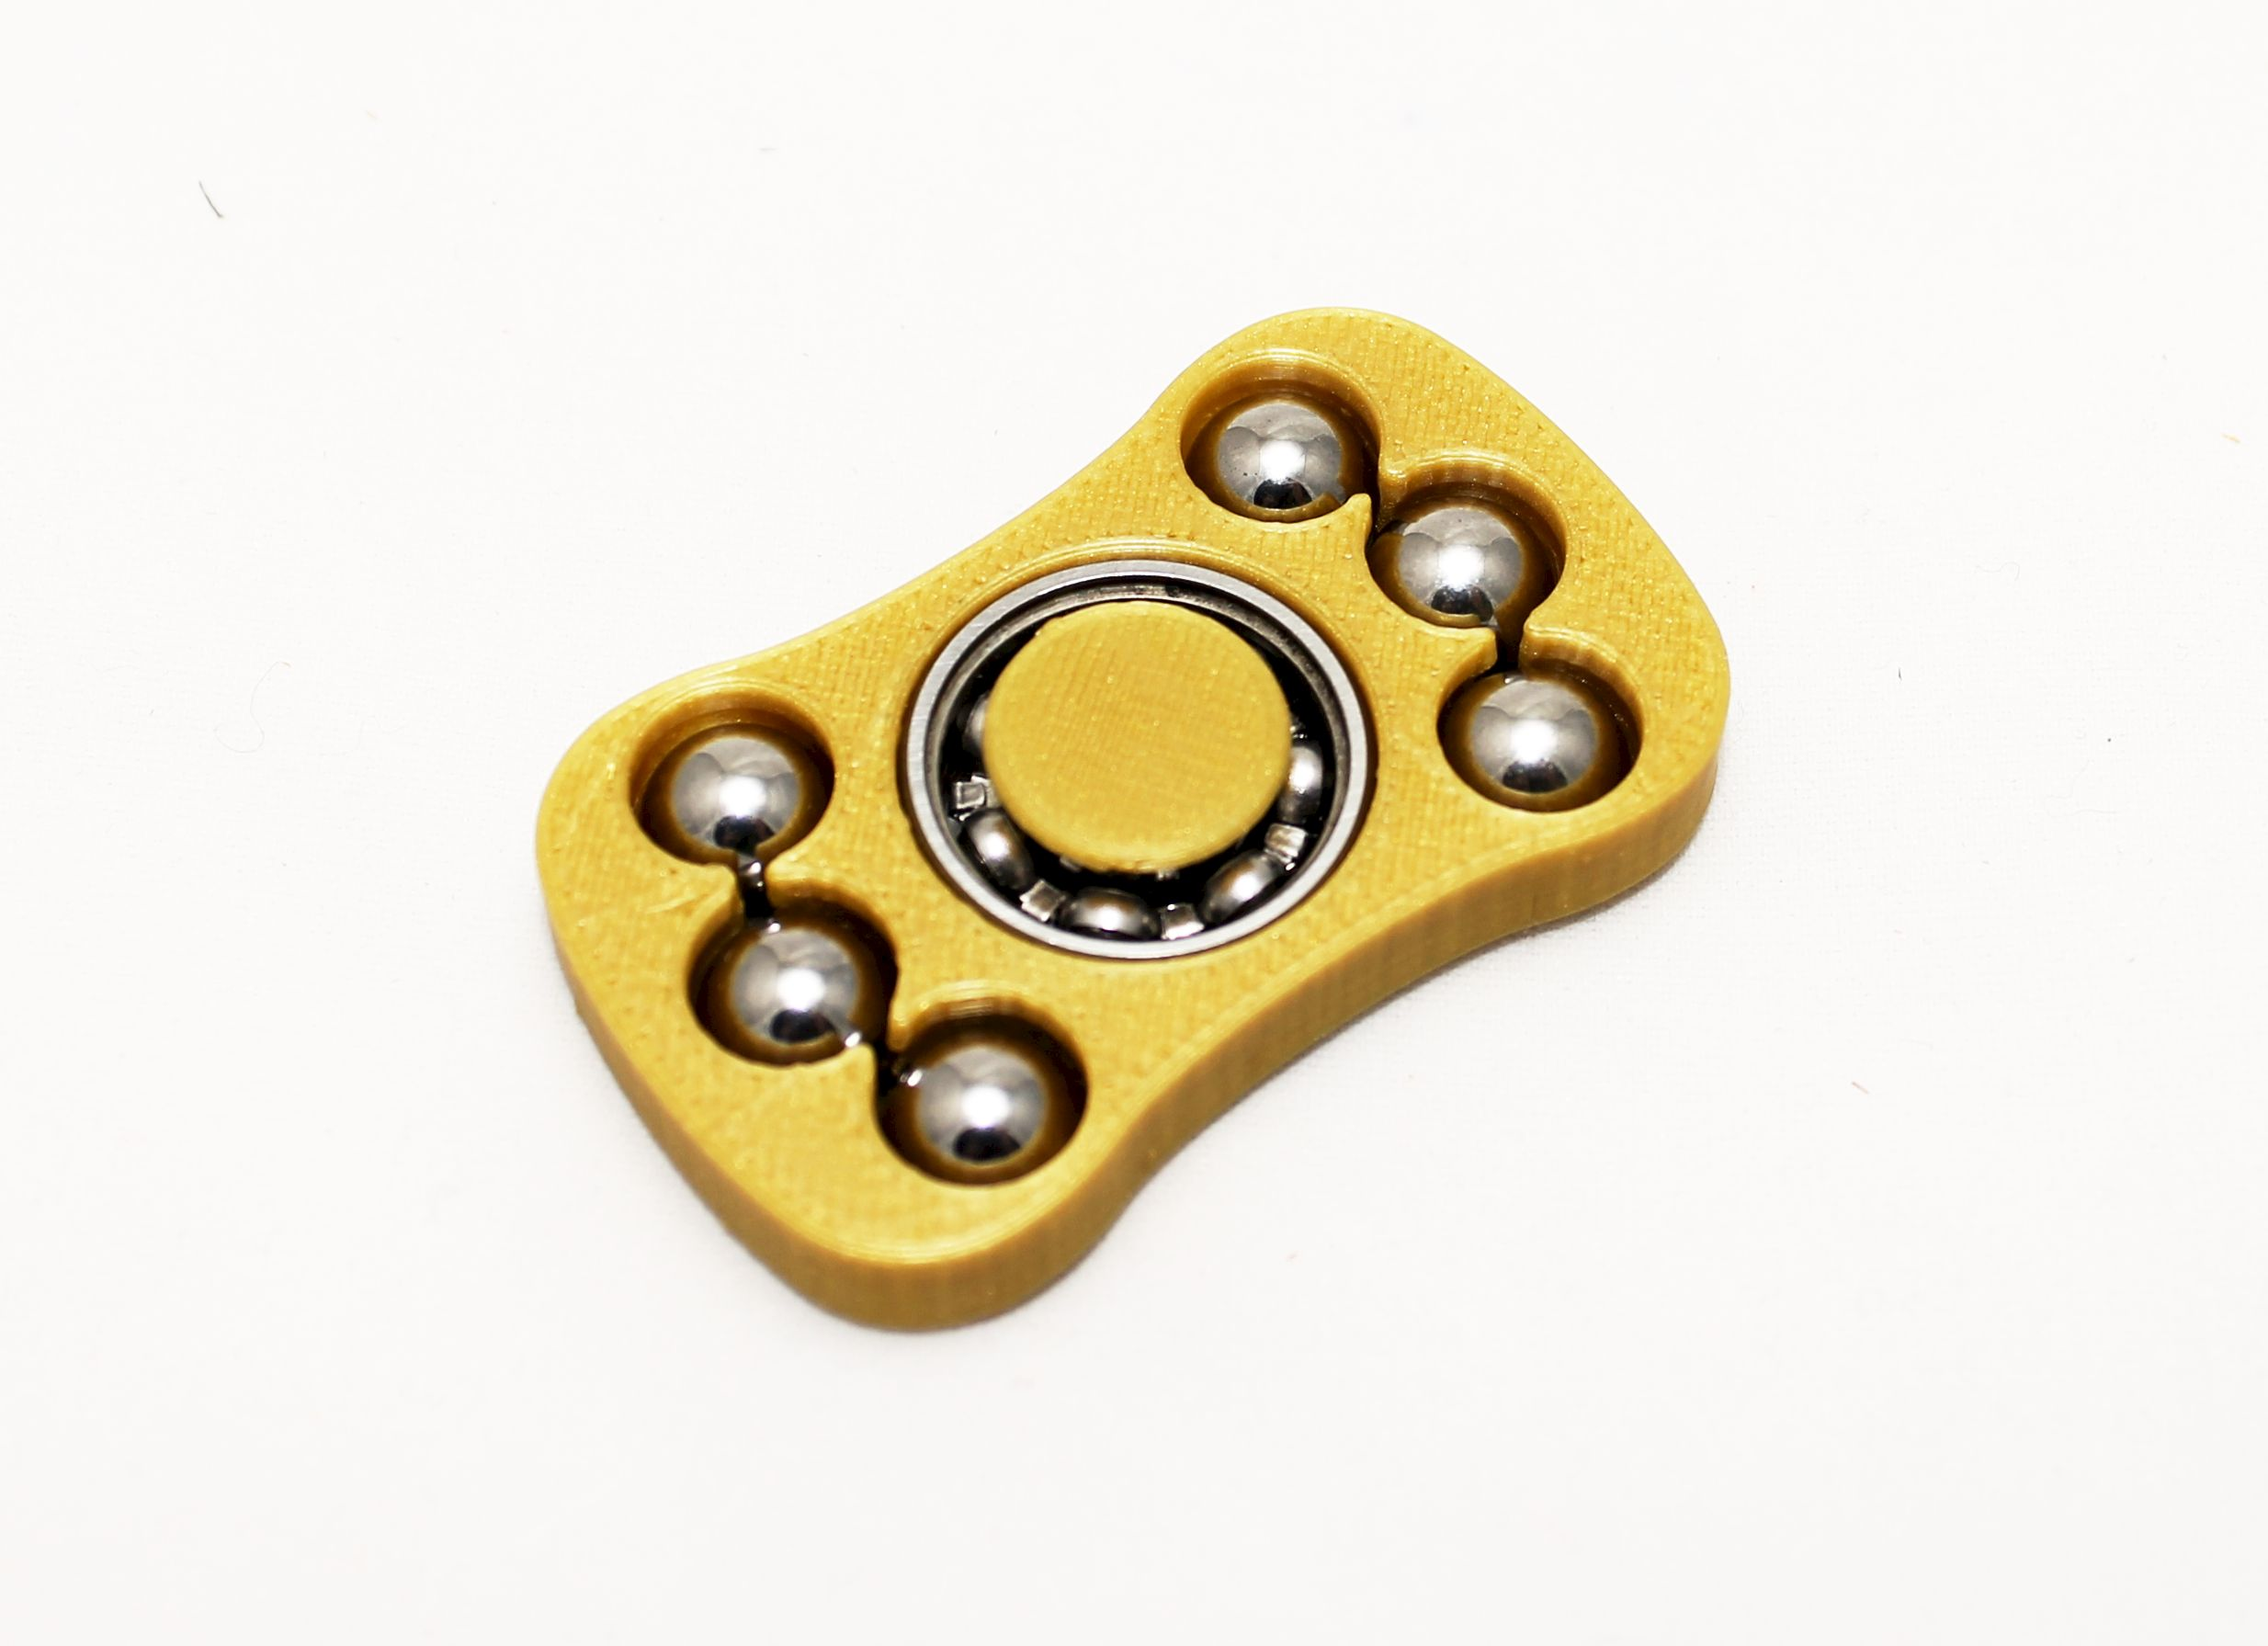 Mini Fidget spinner